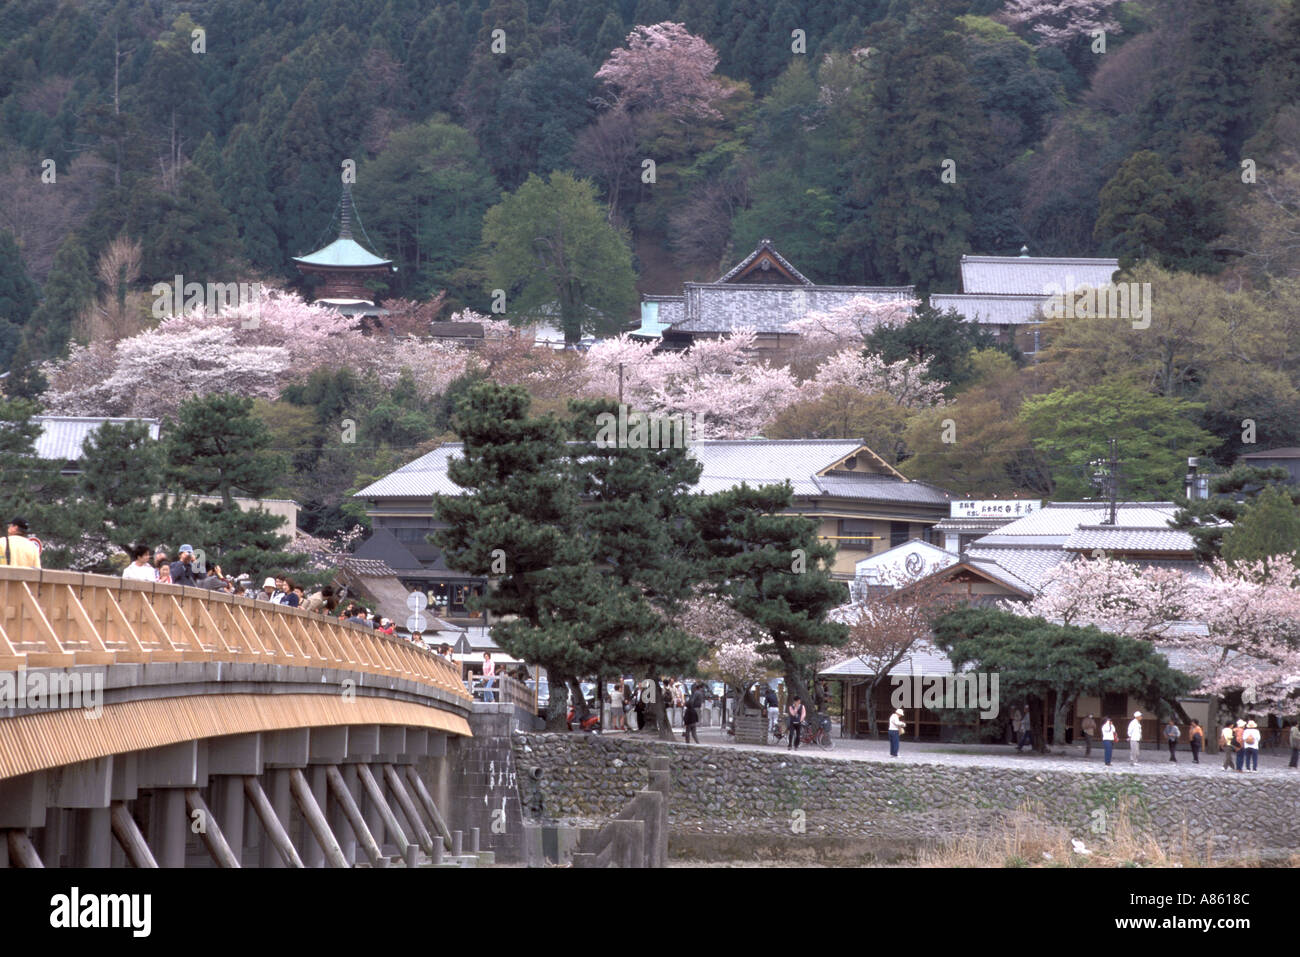 The famous Togetsukyo bridge in Arashiyama, Kyoto is one of the most popular in Japan and appears in many historical stories - Stock Image